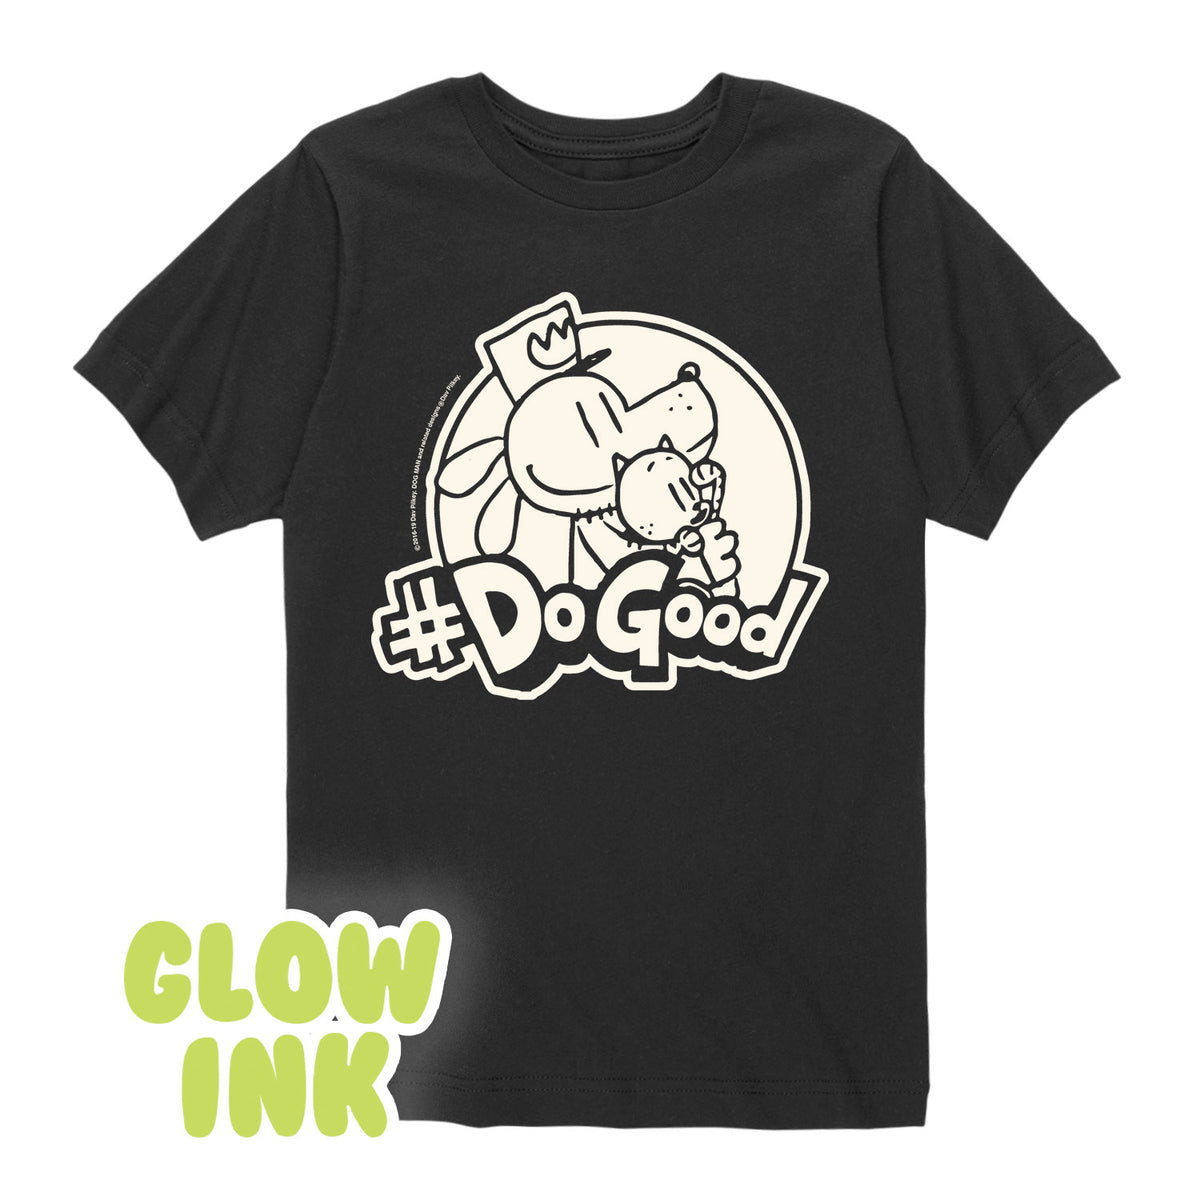 Dog Man - #DoGood, Glow In The Dark - Toddler Short Sleeve T-Shirt